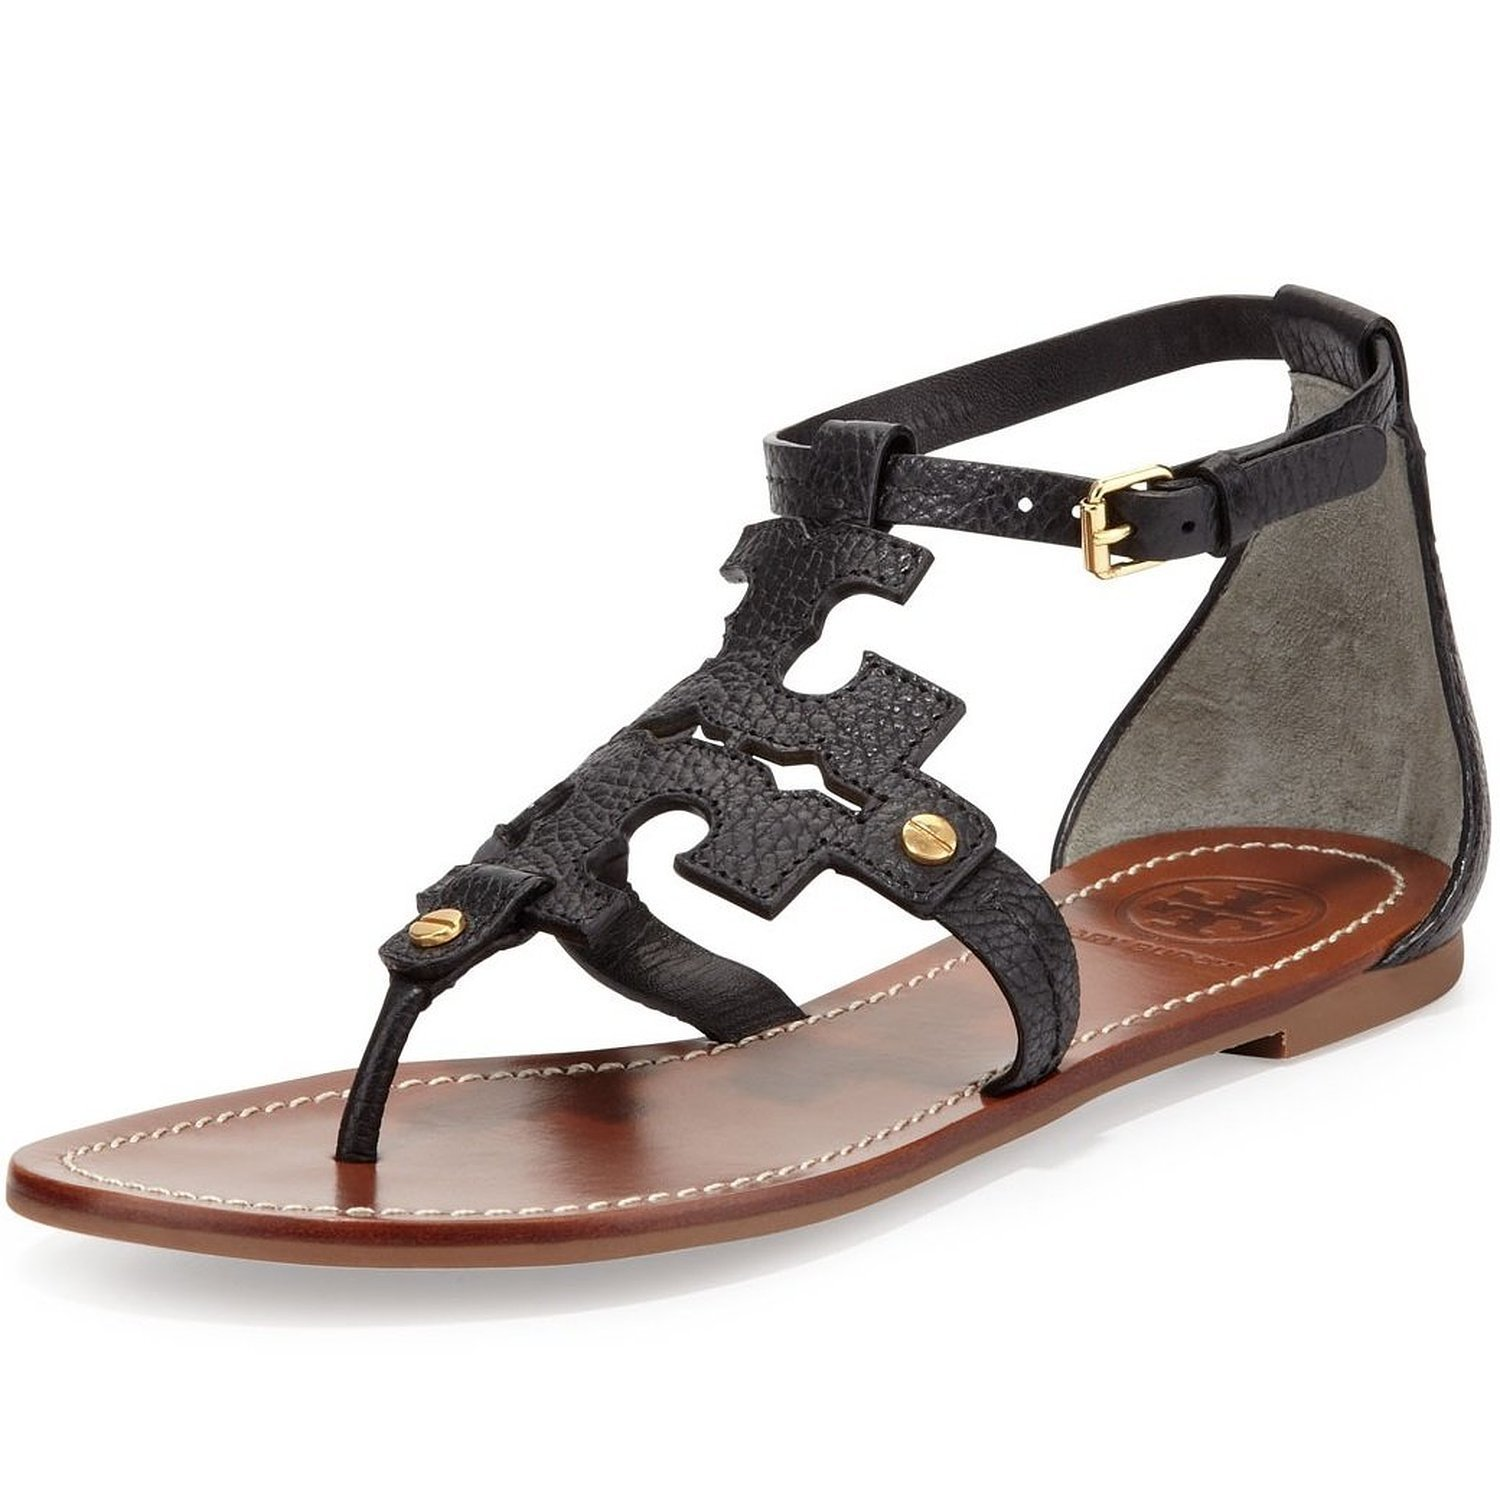 1a27857e453f ... discount code for tory burch phoebe flat thong sandal black and 50  similar items. 71copjb0v5l